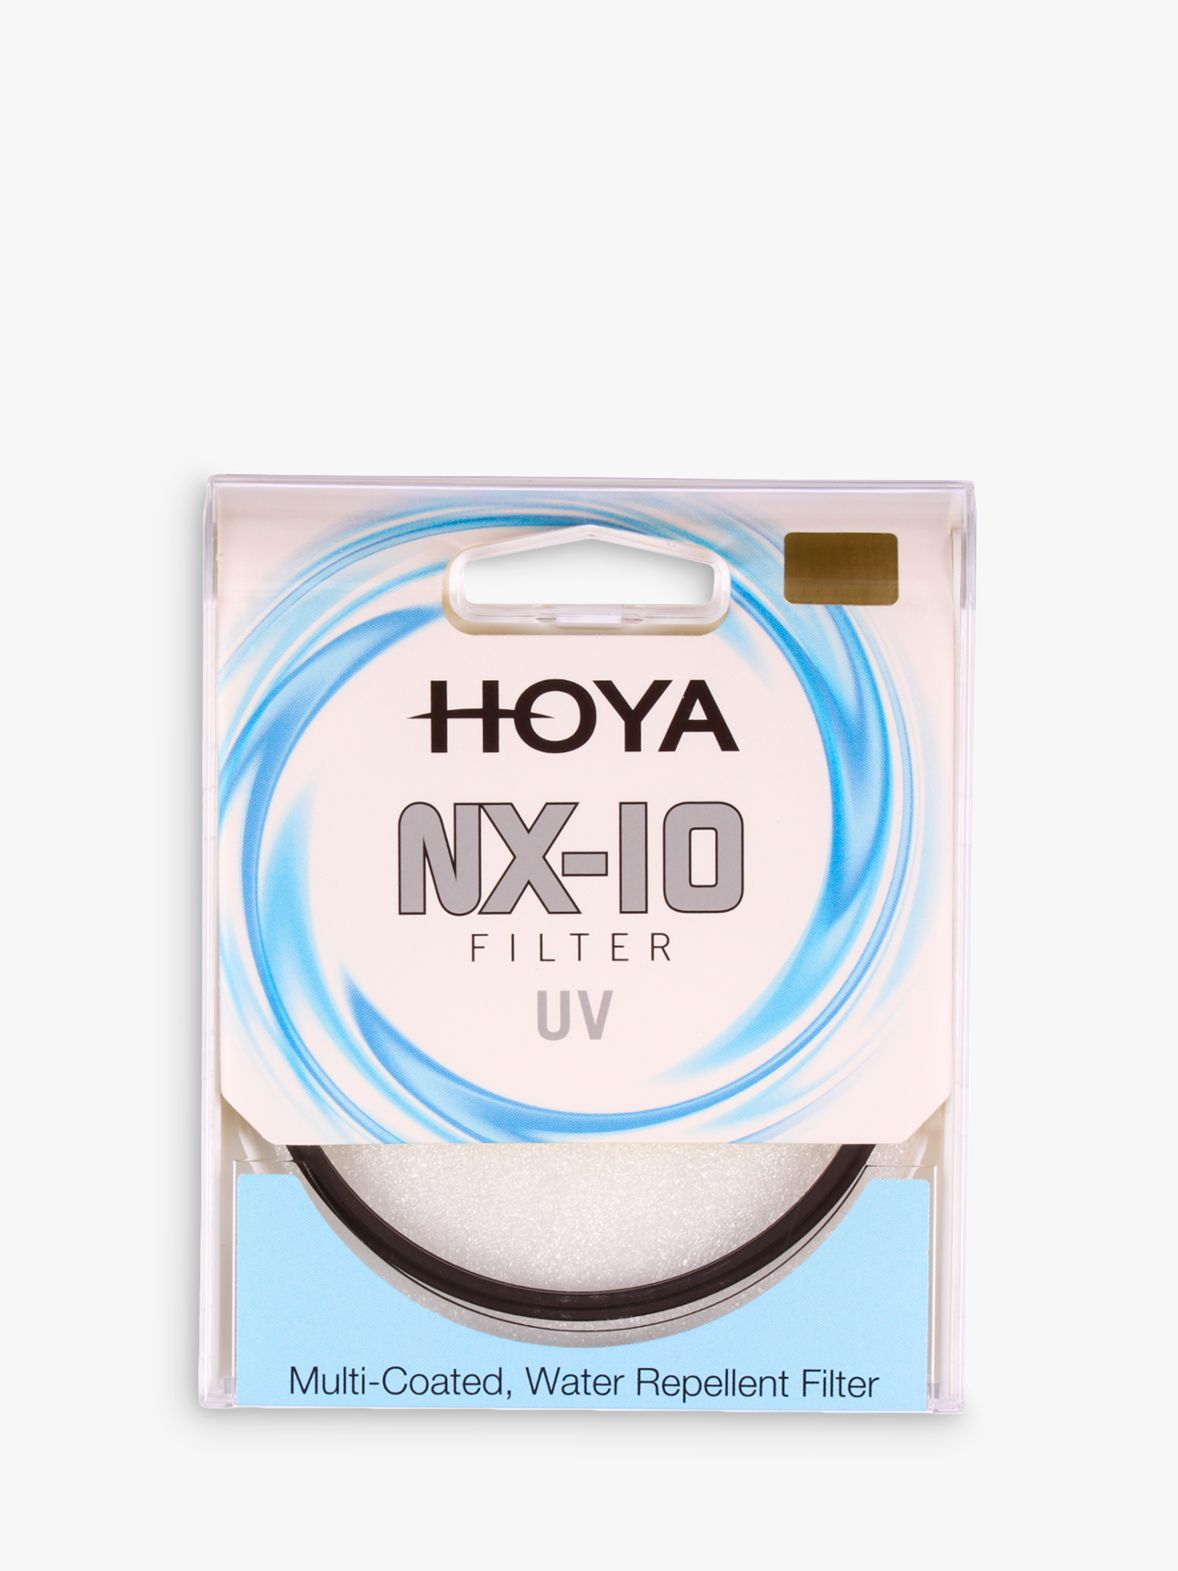 Hoya Hoya NX-10 UV Lens Filter, 58mm